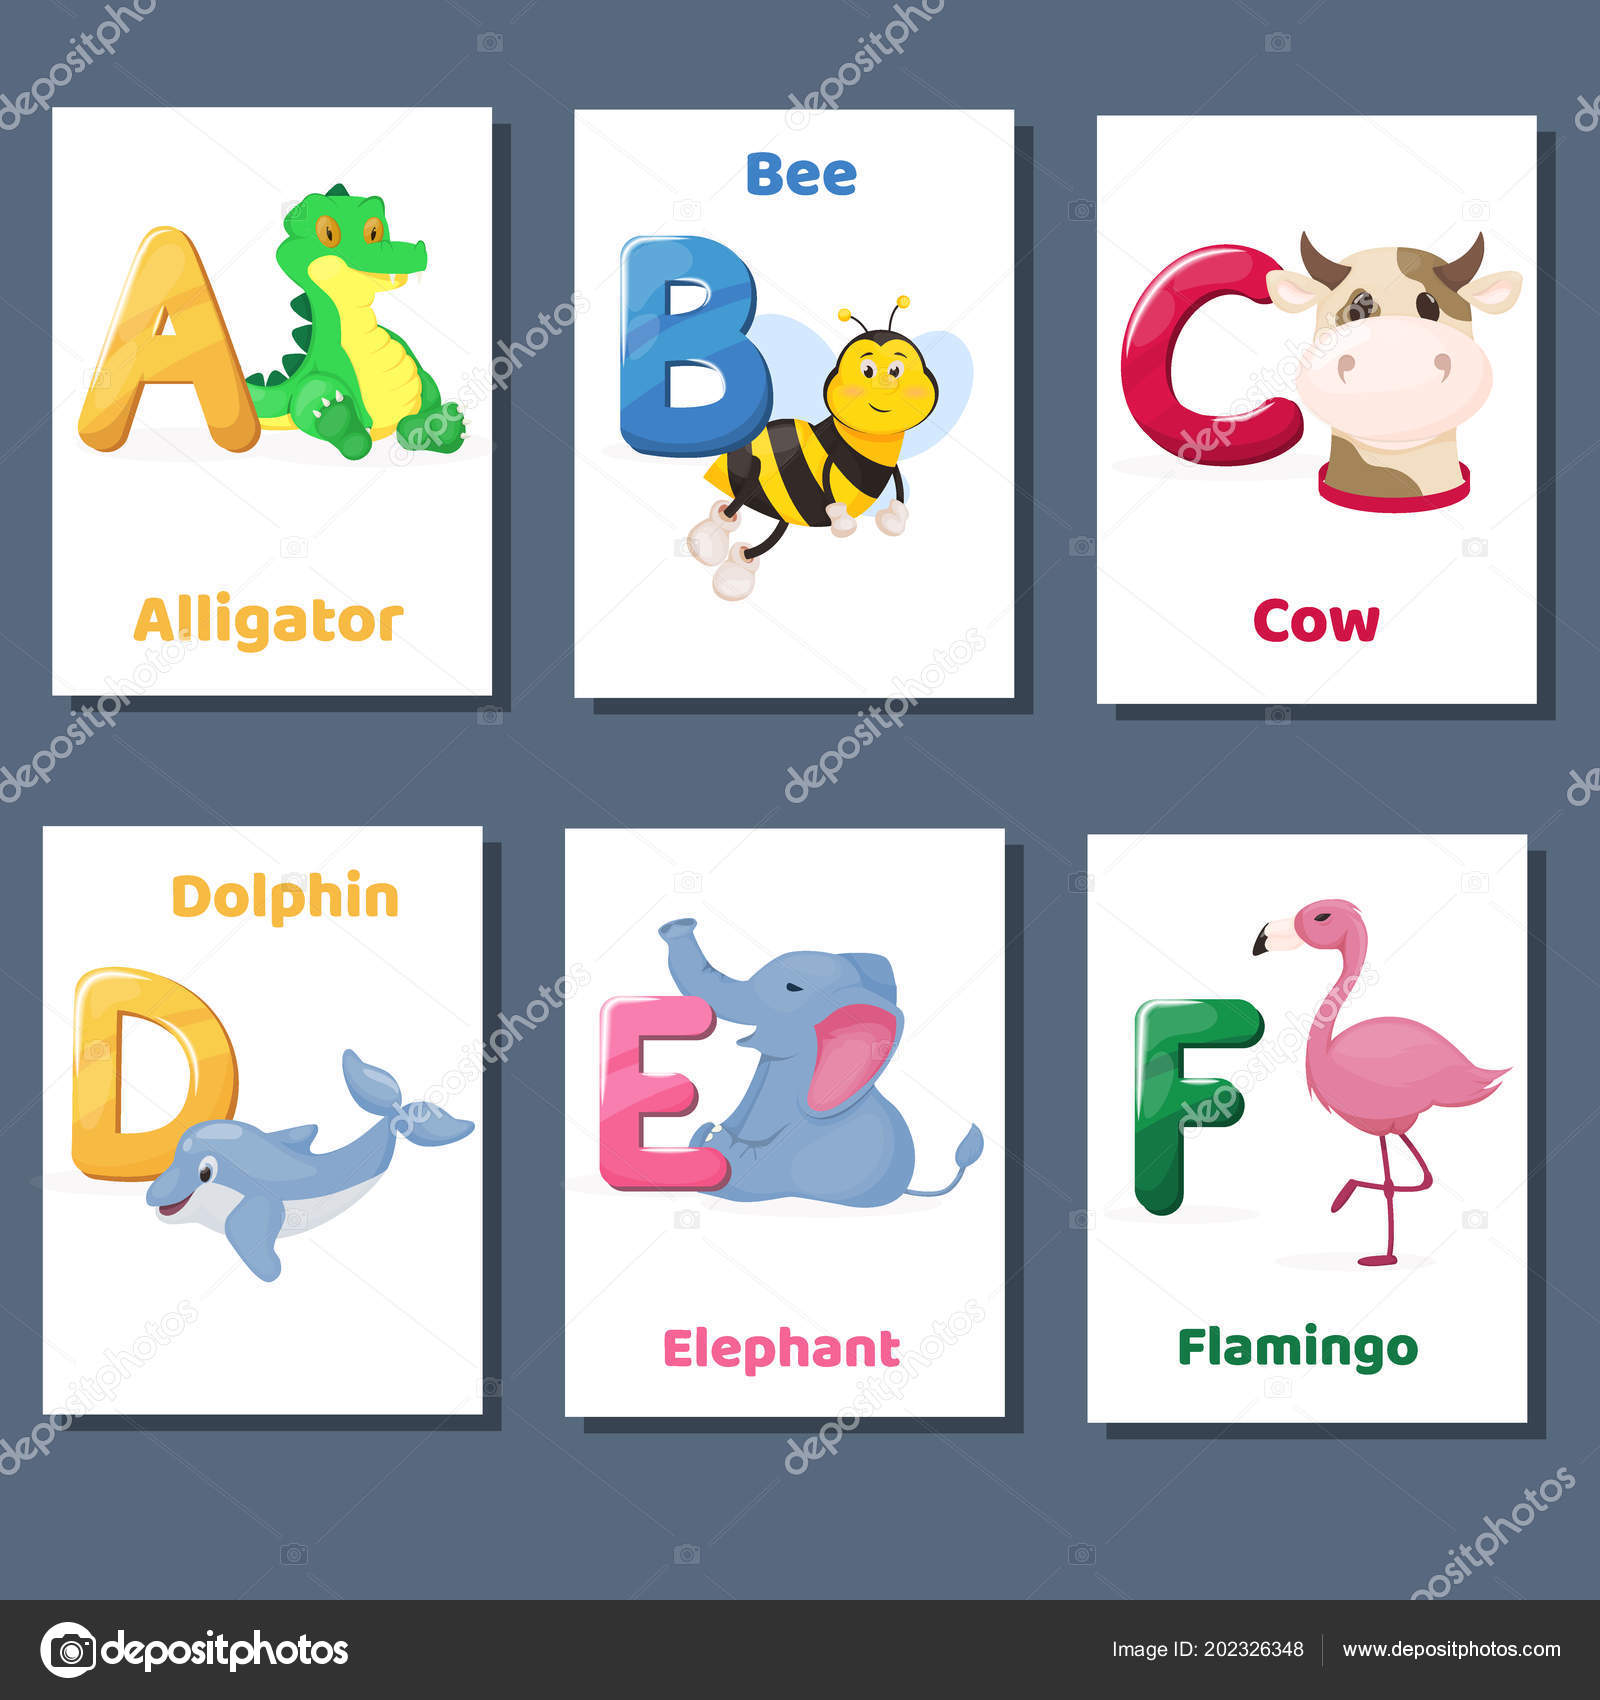 photo relating to Zoo Phonics Alphabet Cards Printable known as Zoo phonics flash playing cards printable Alphabet printable